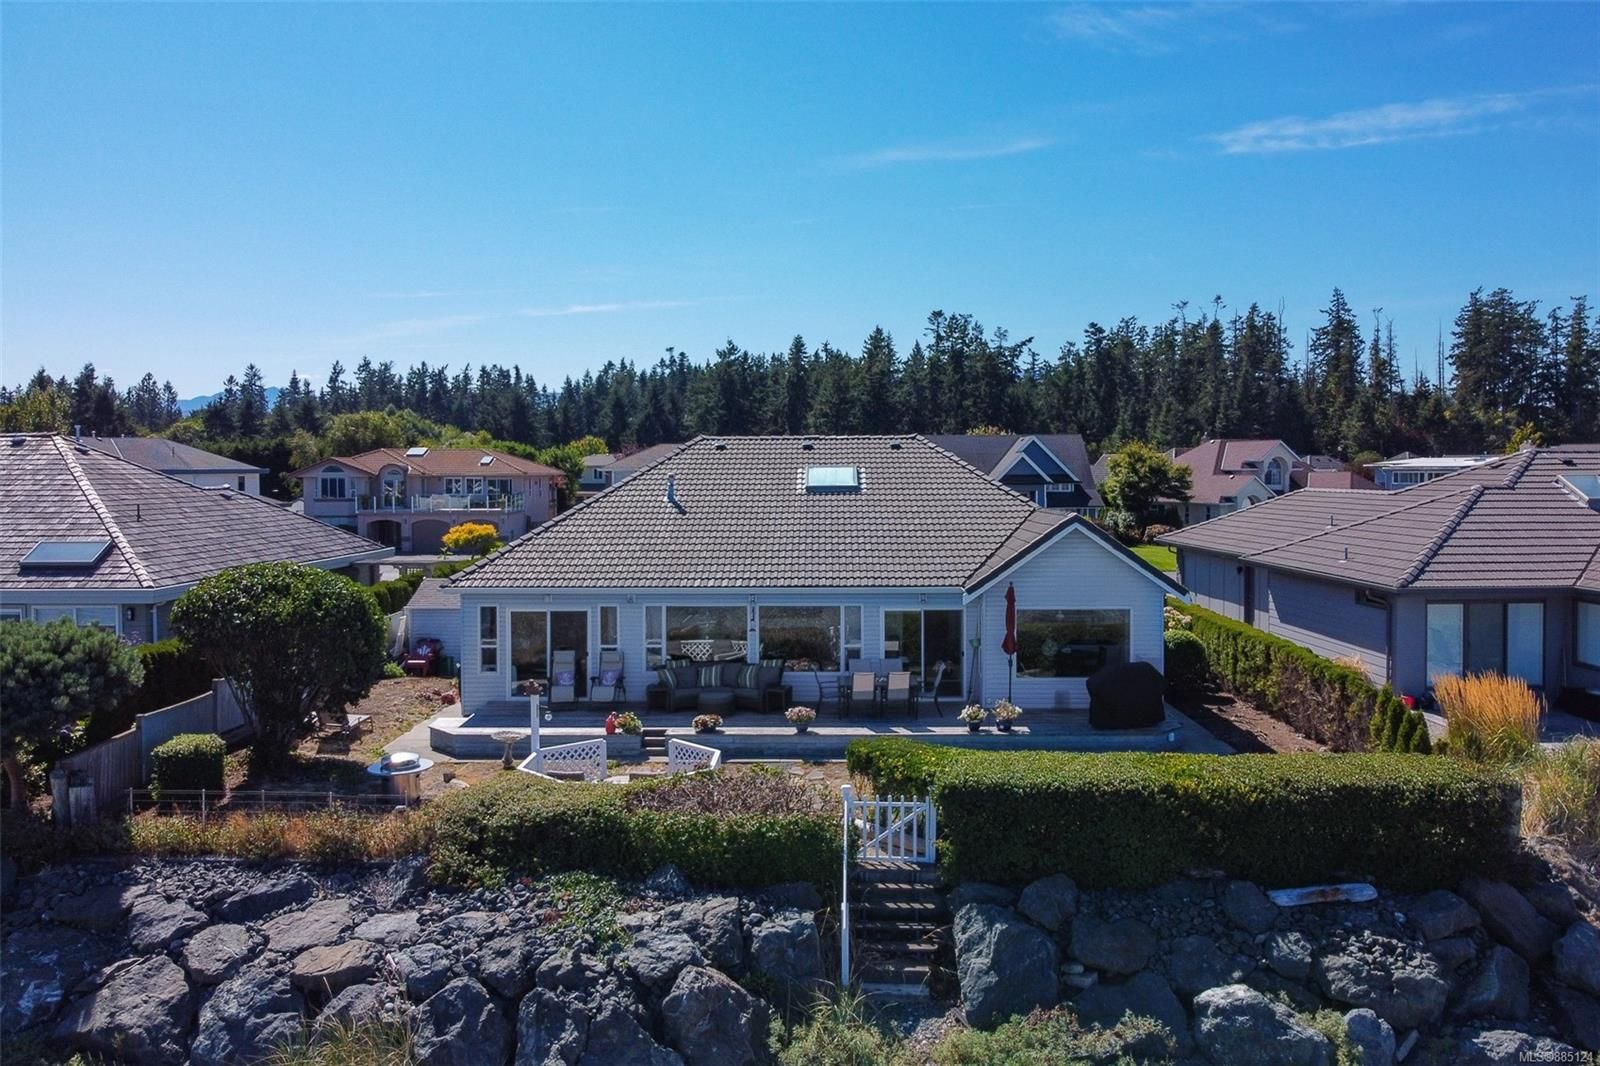 Photo 57: Photos: 1705 Admiral Tryon Blvd in : PQ French Creek House for sale (Parksville/Qualicum)  : MLS®# 885124